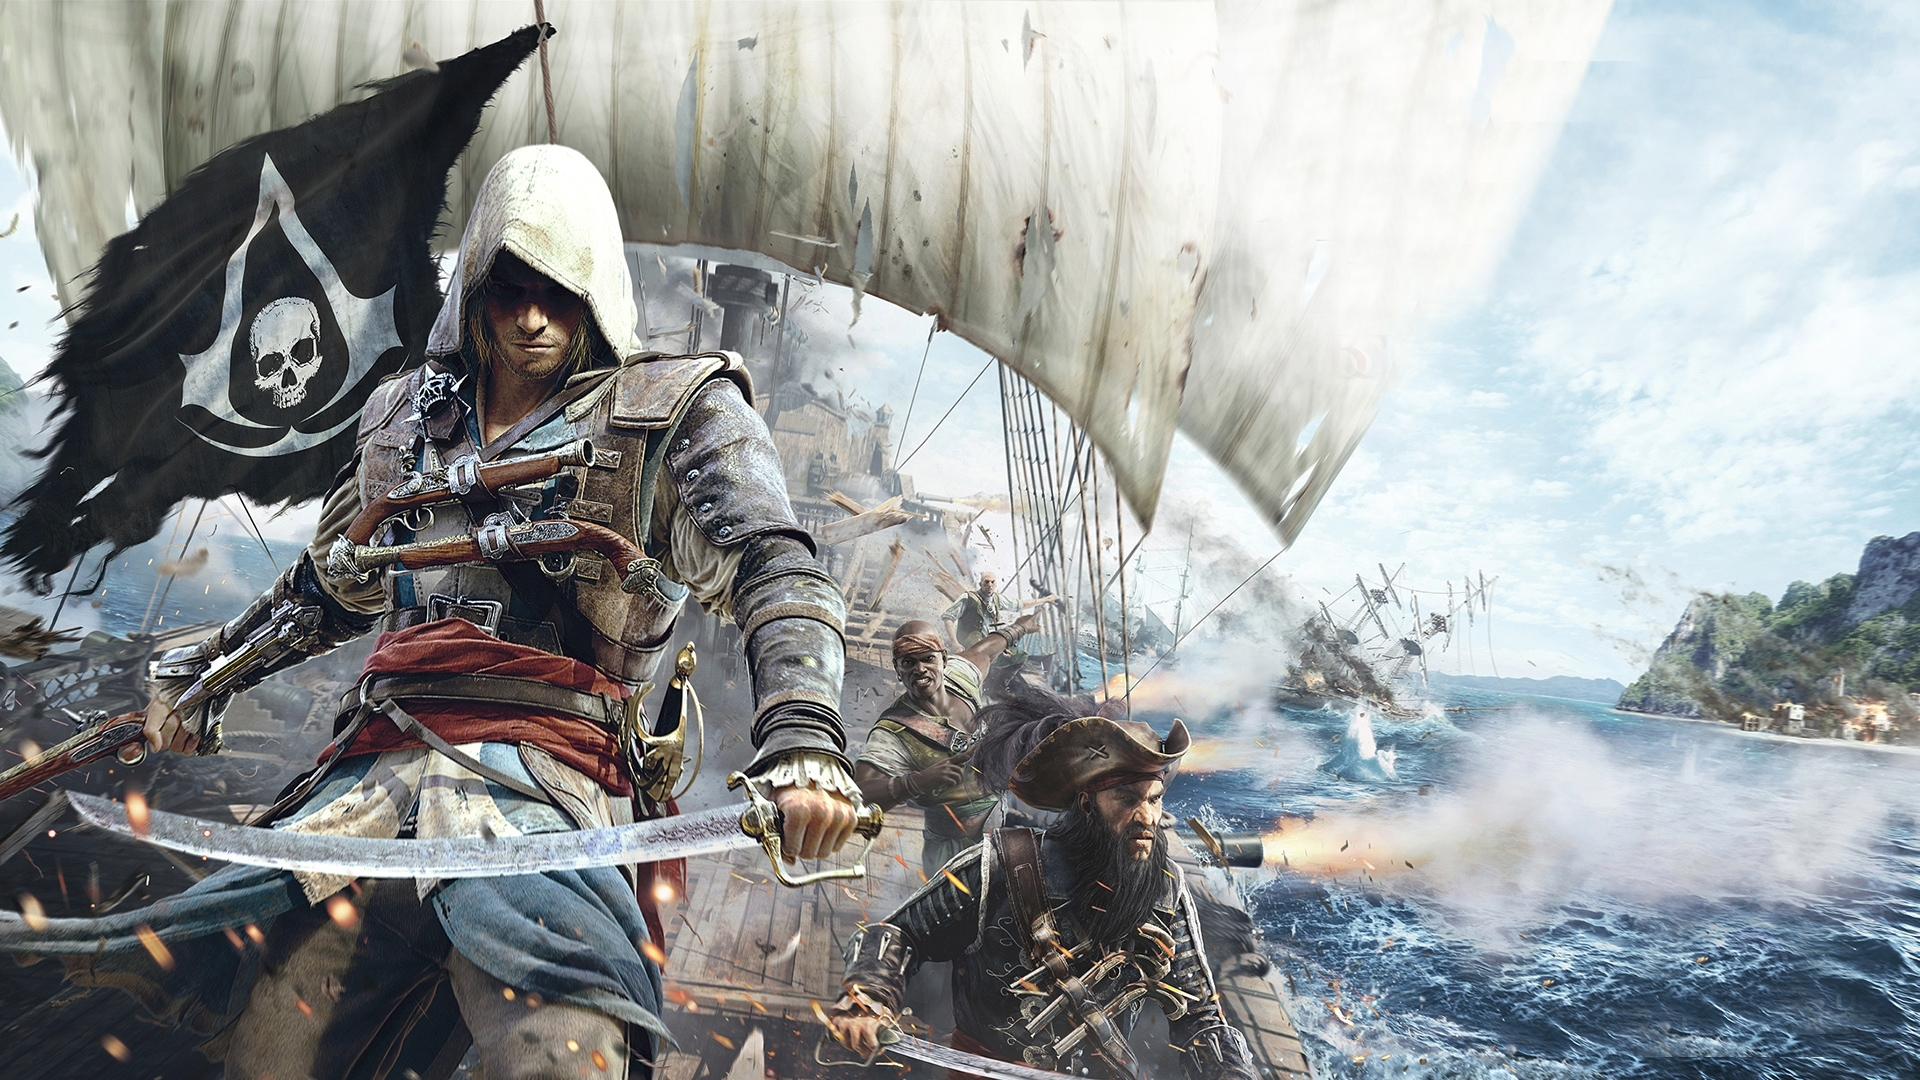 assassin's creed iv: black flag full hd fond d'écran and arrière